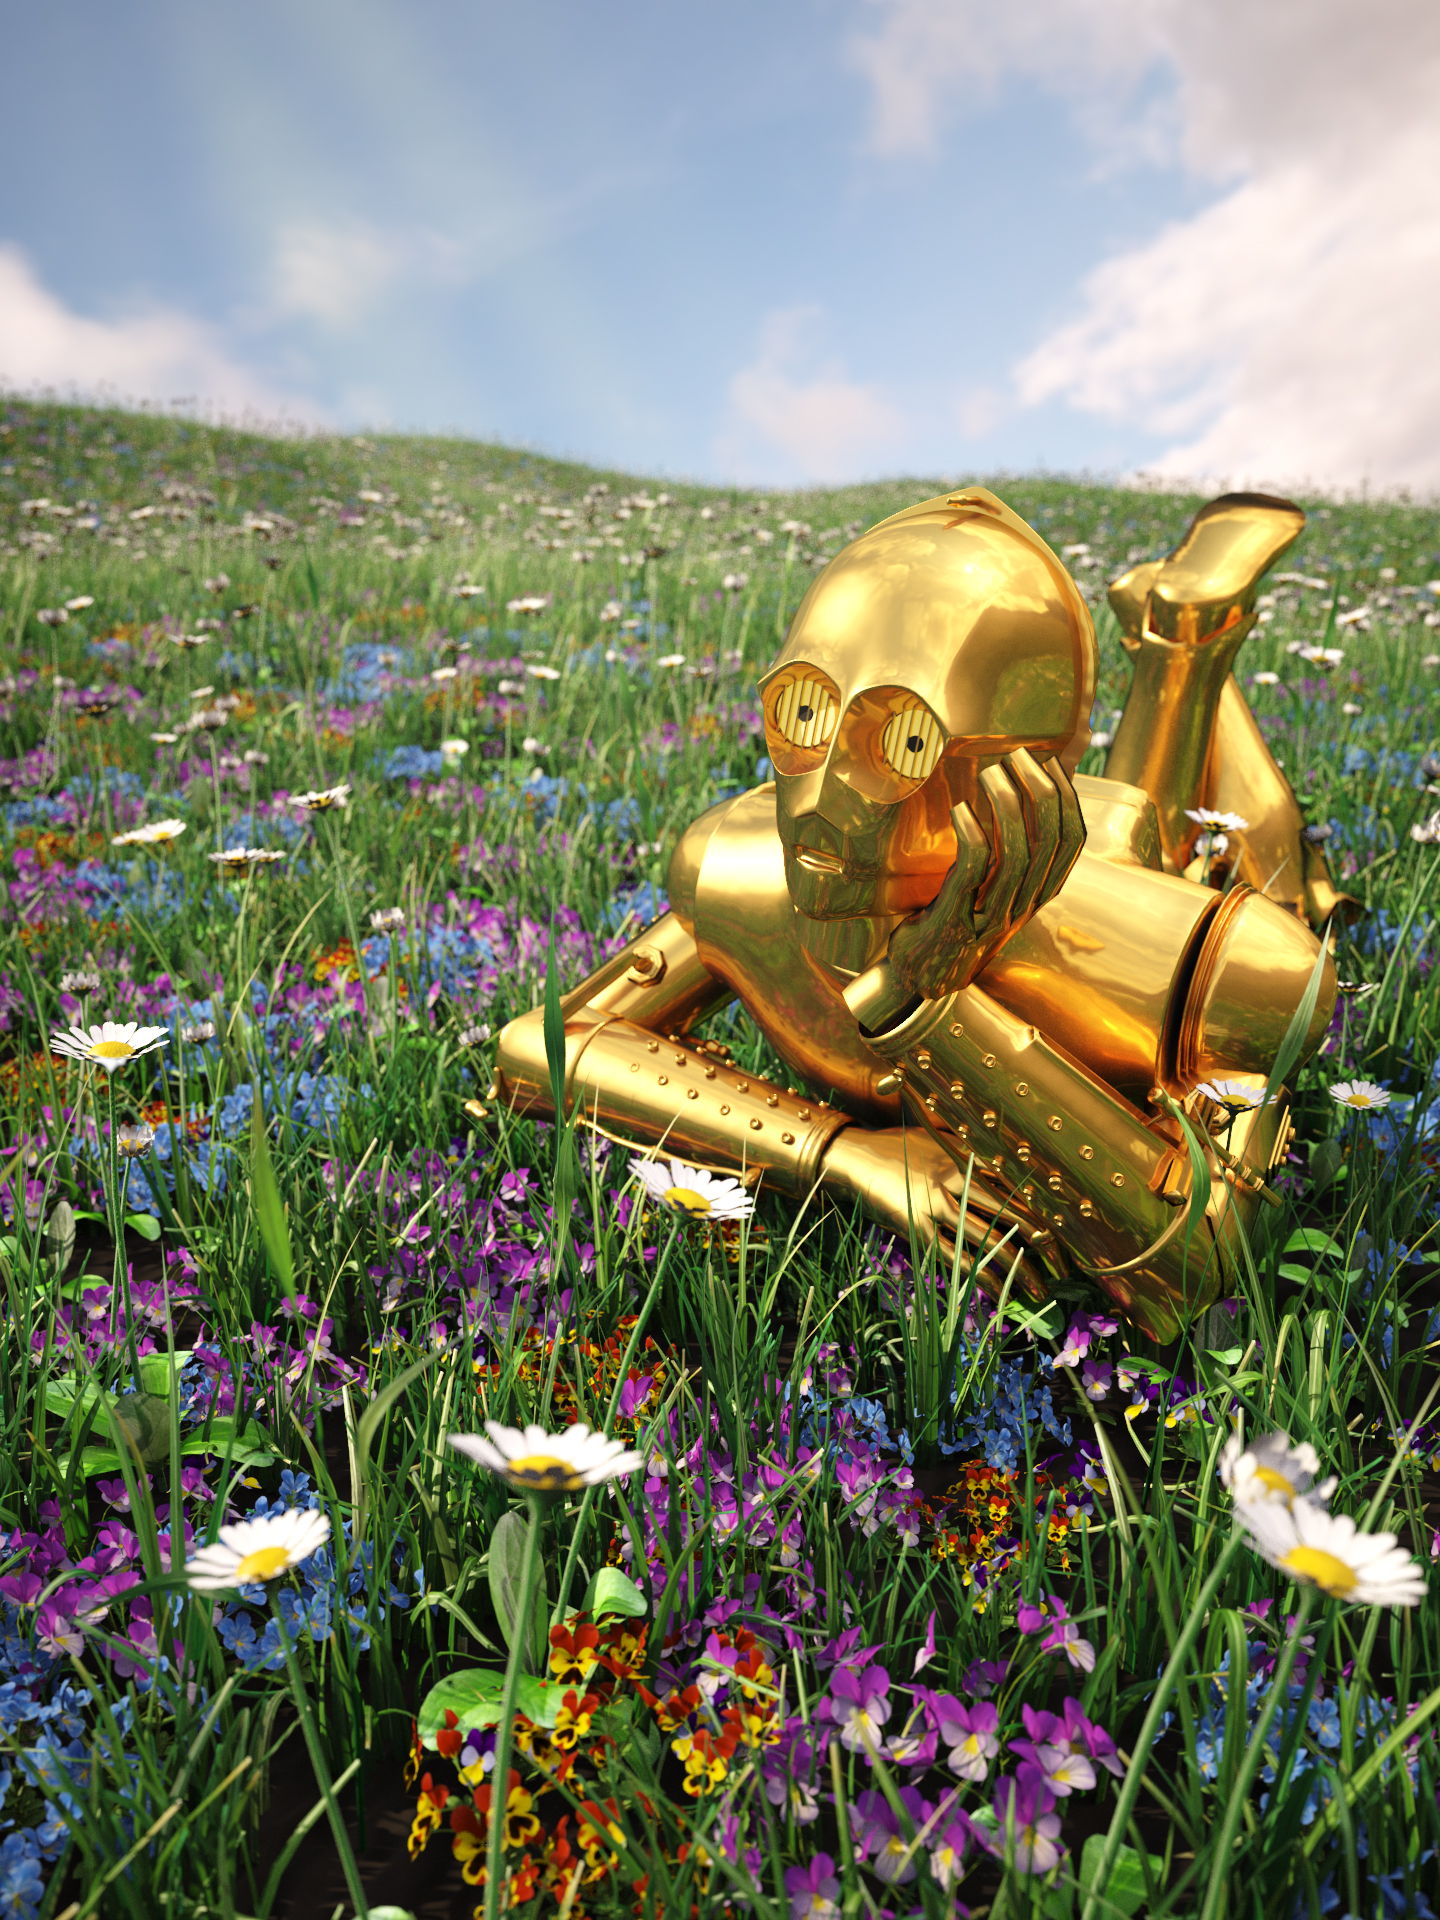 C-3PO Laying In A Field